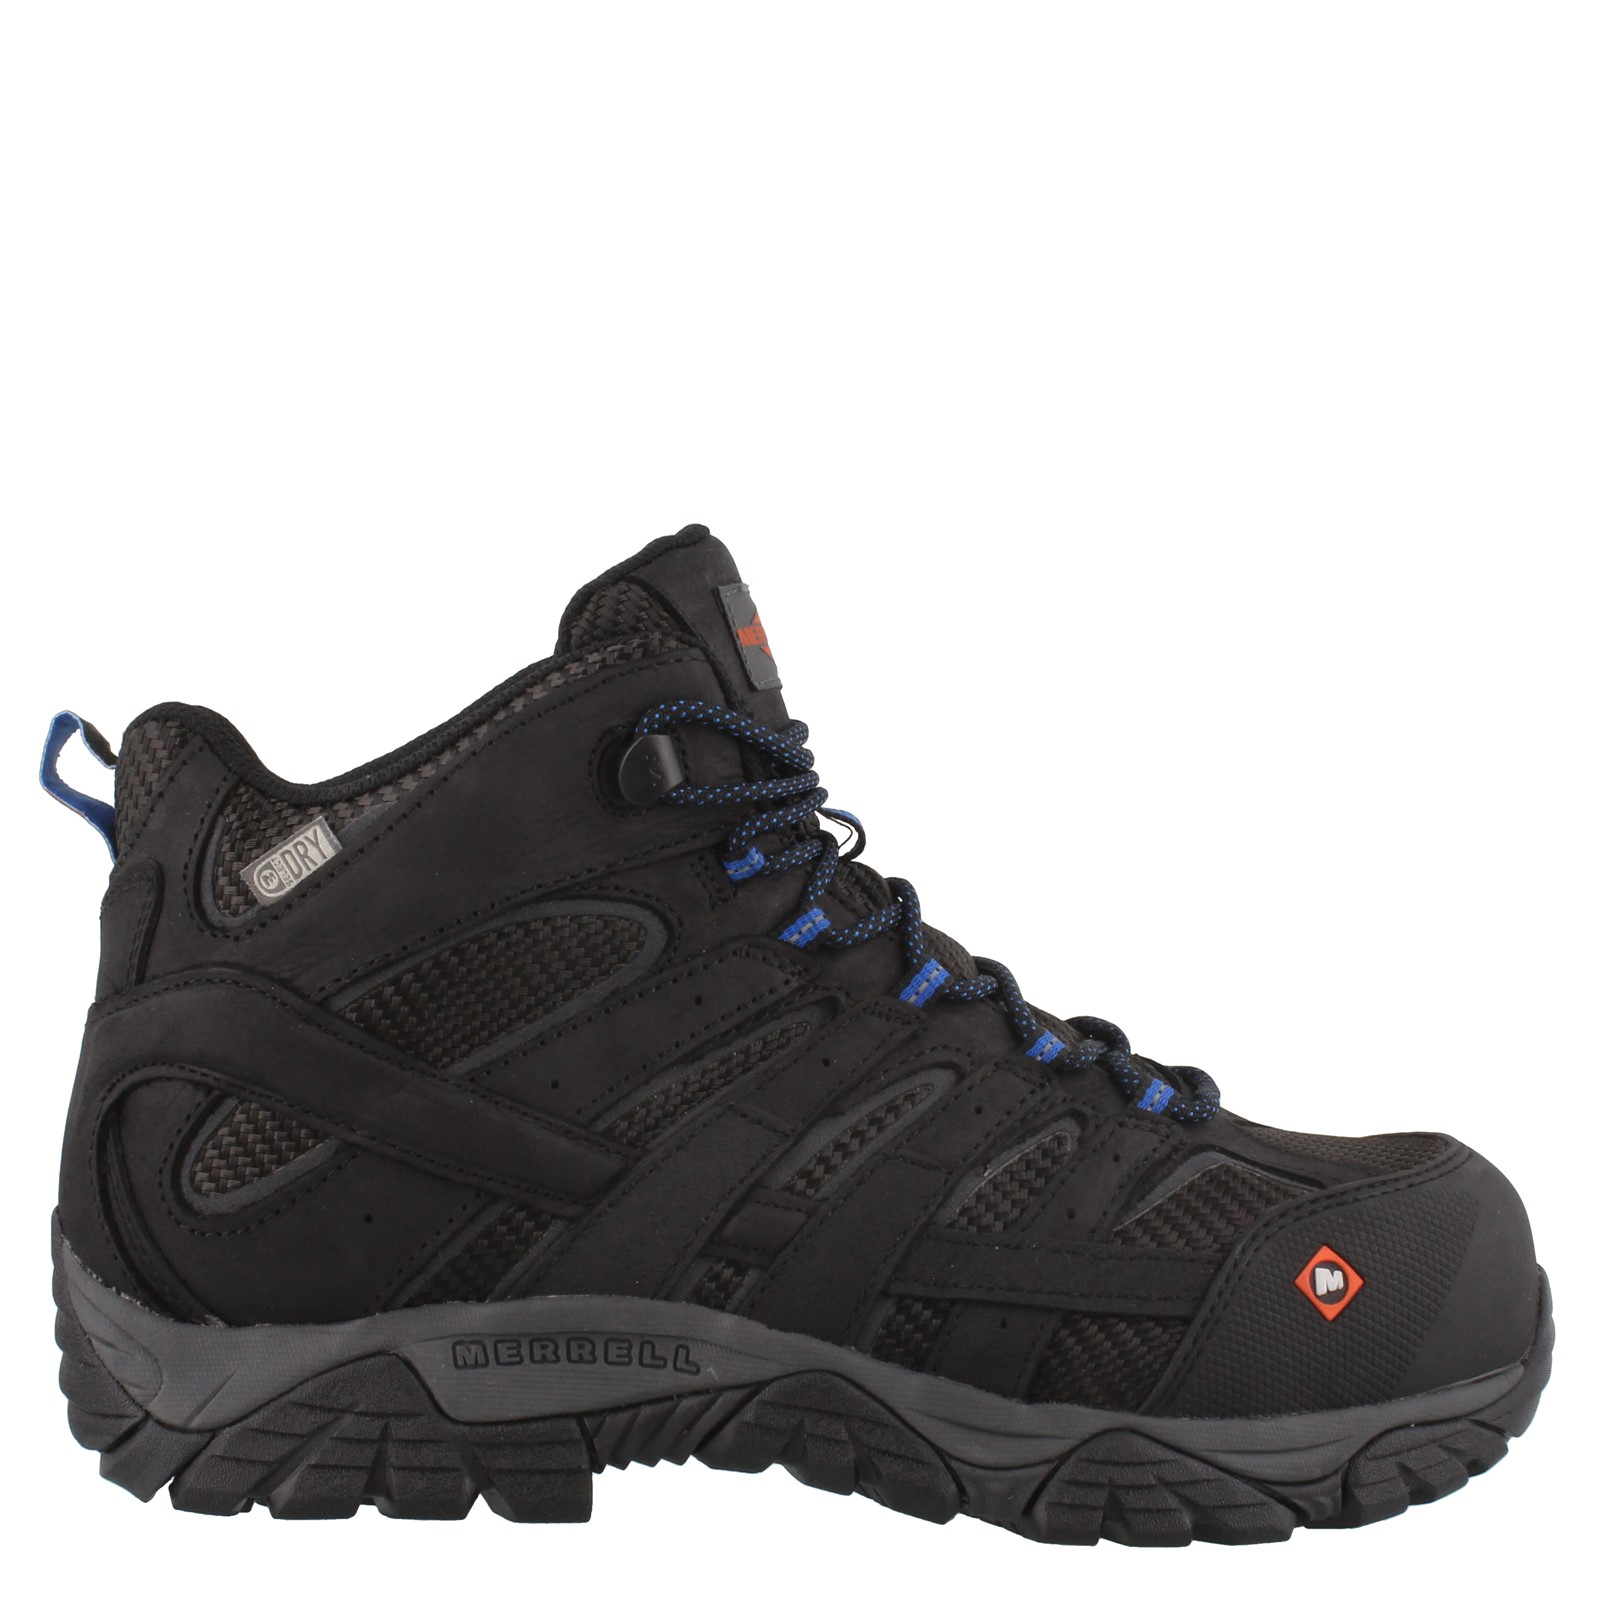 43c592ad Men's Merrell, Moab 2 Vent Mid Waterproof Composite Toe Work Boots ...